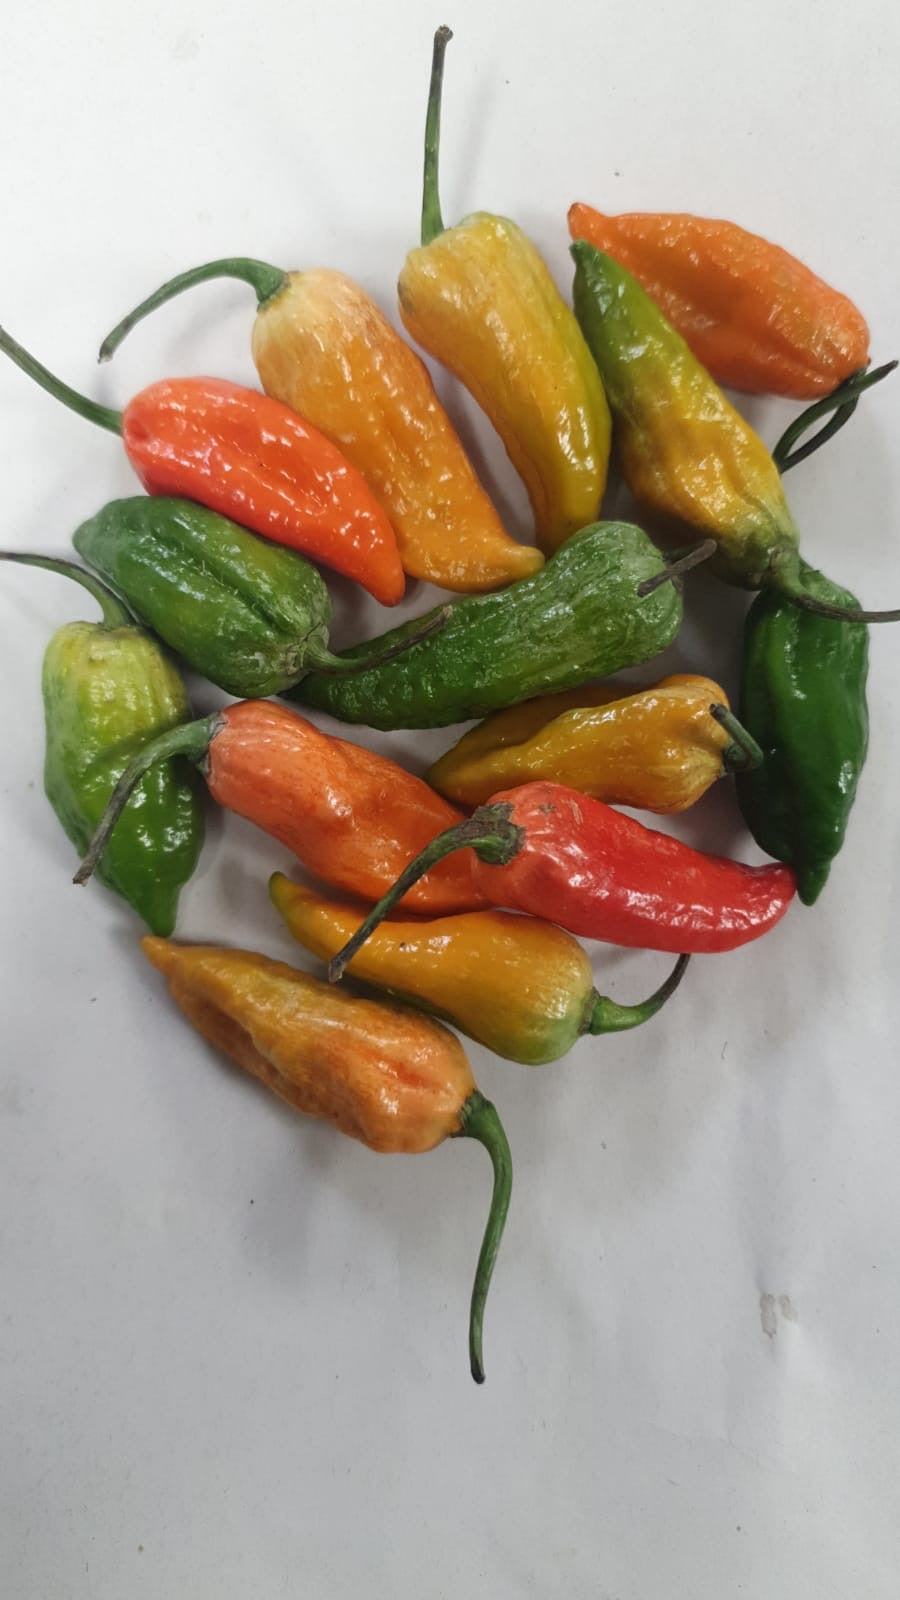 Naga chillies 4pieces